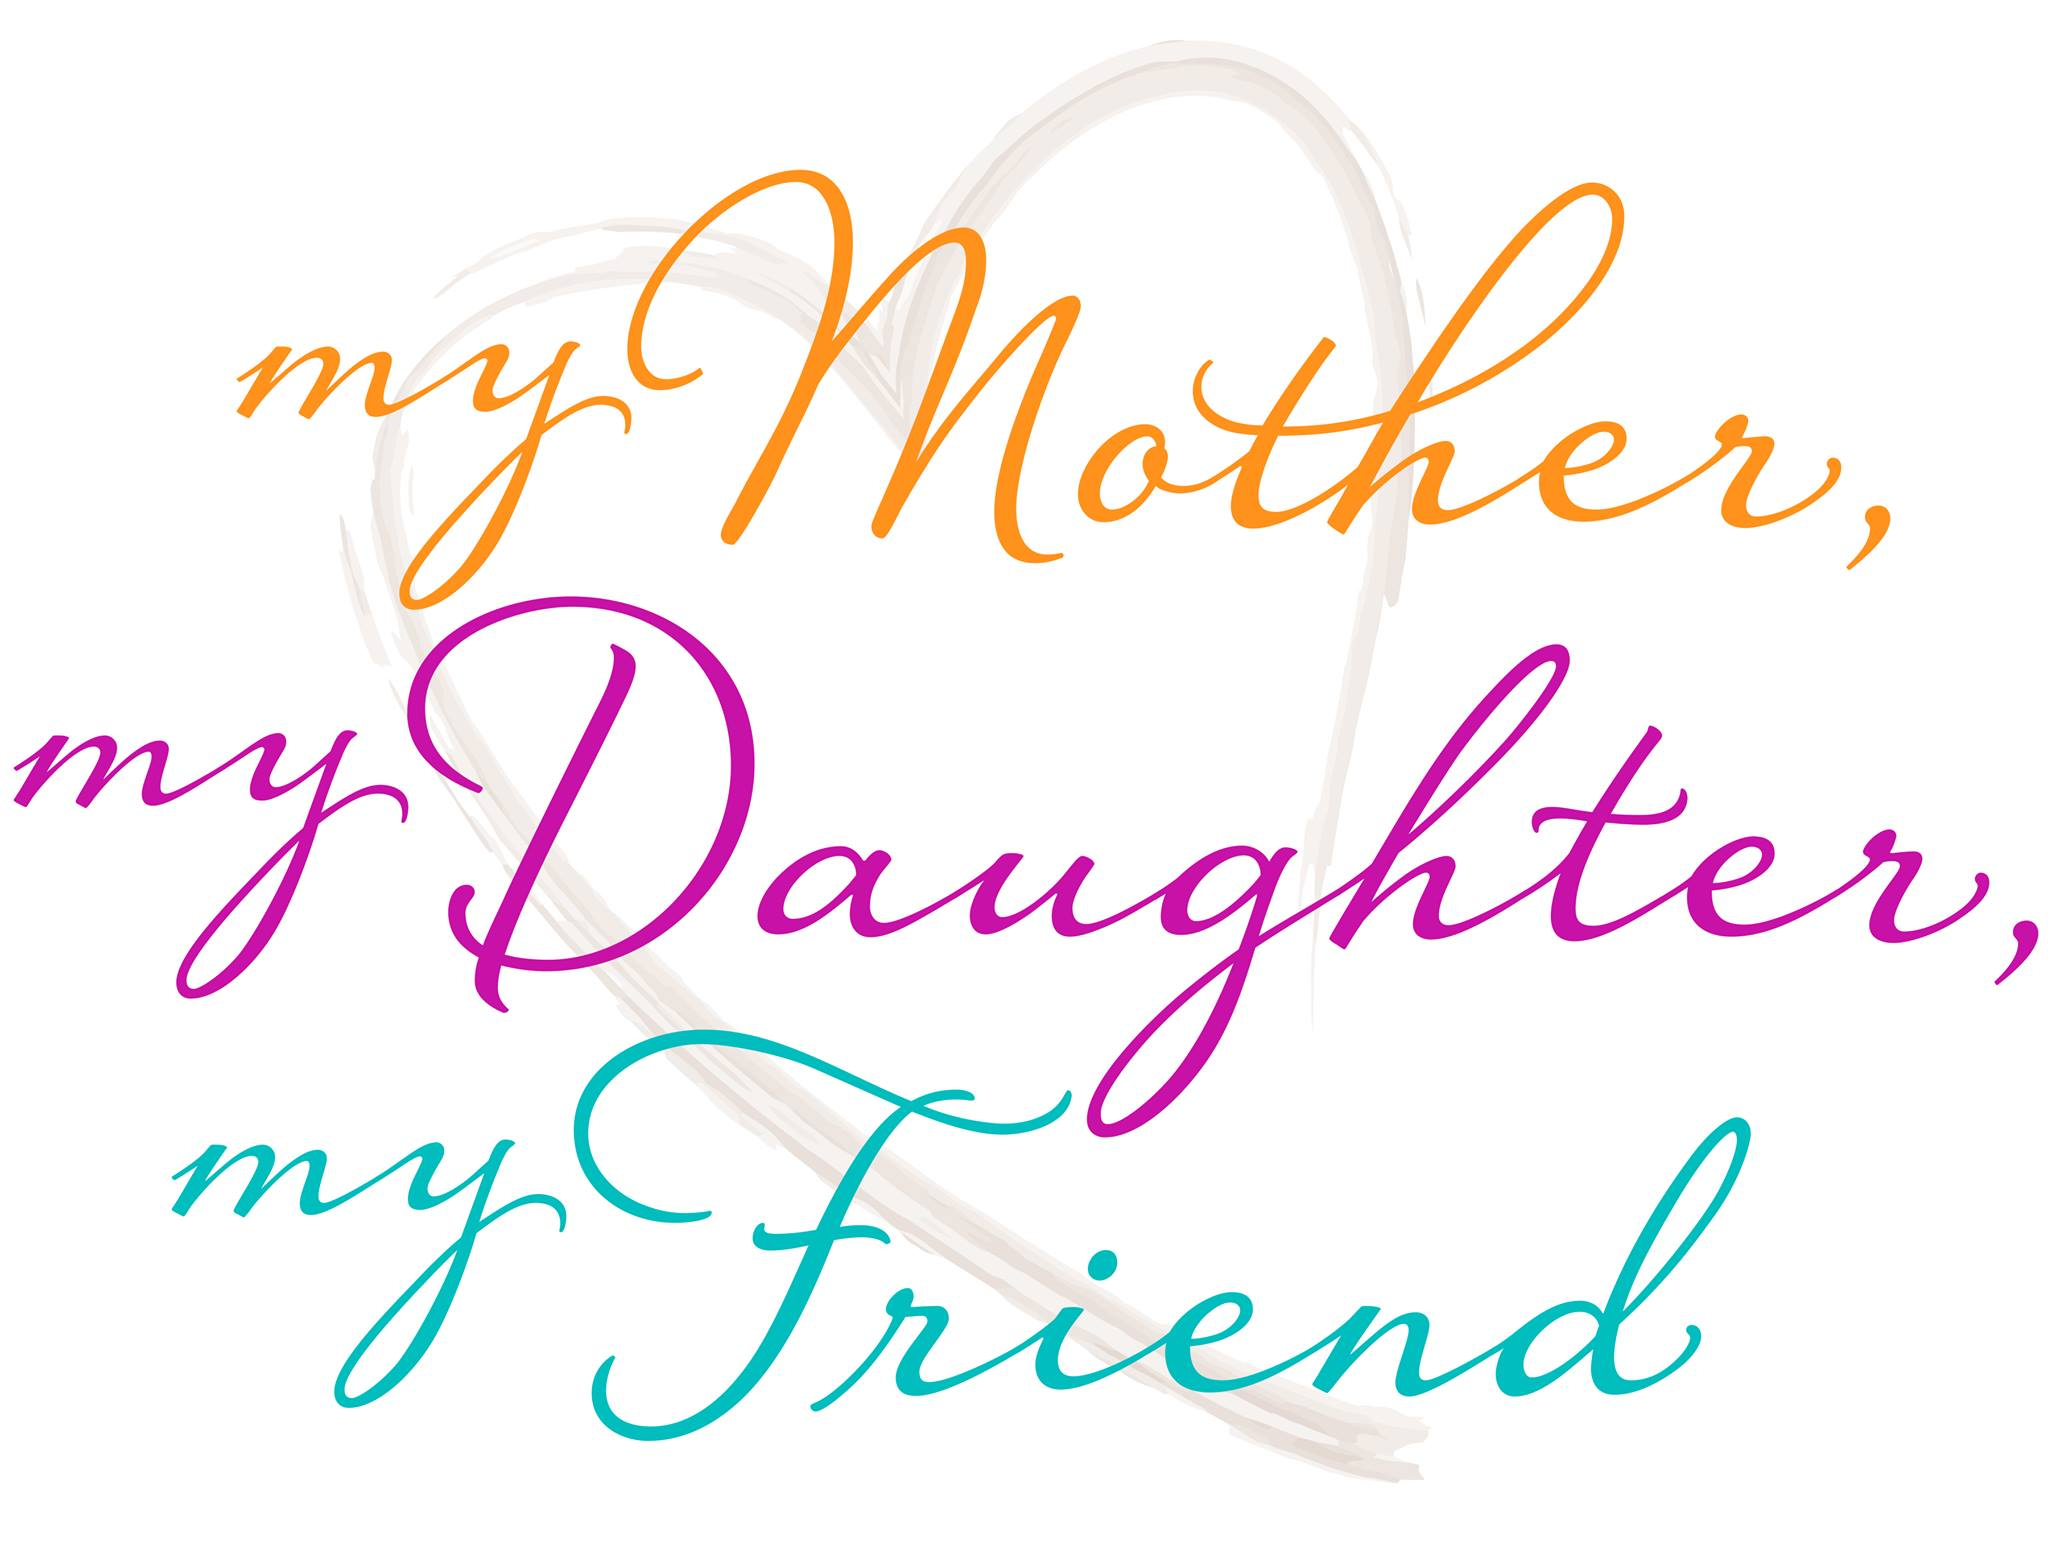 My mother - Guest Post from My Mother, My Daughter, My Friend